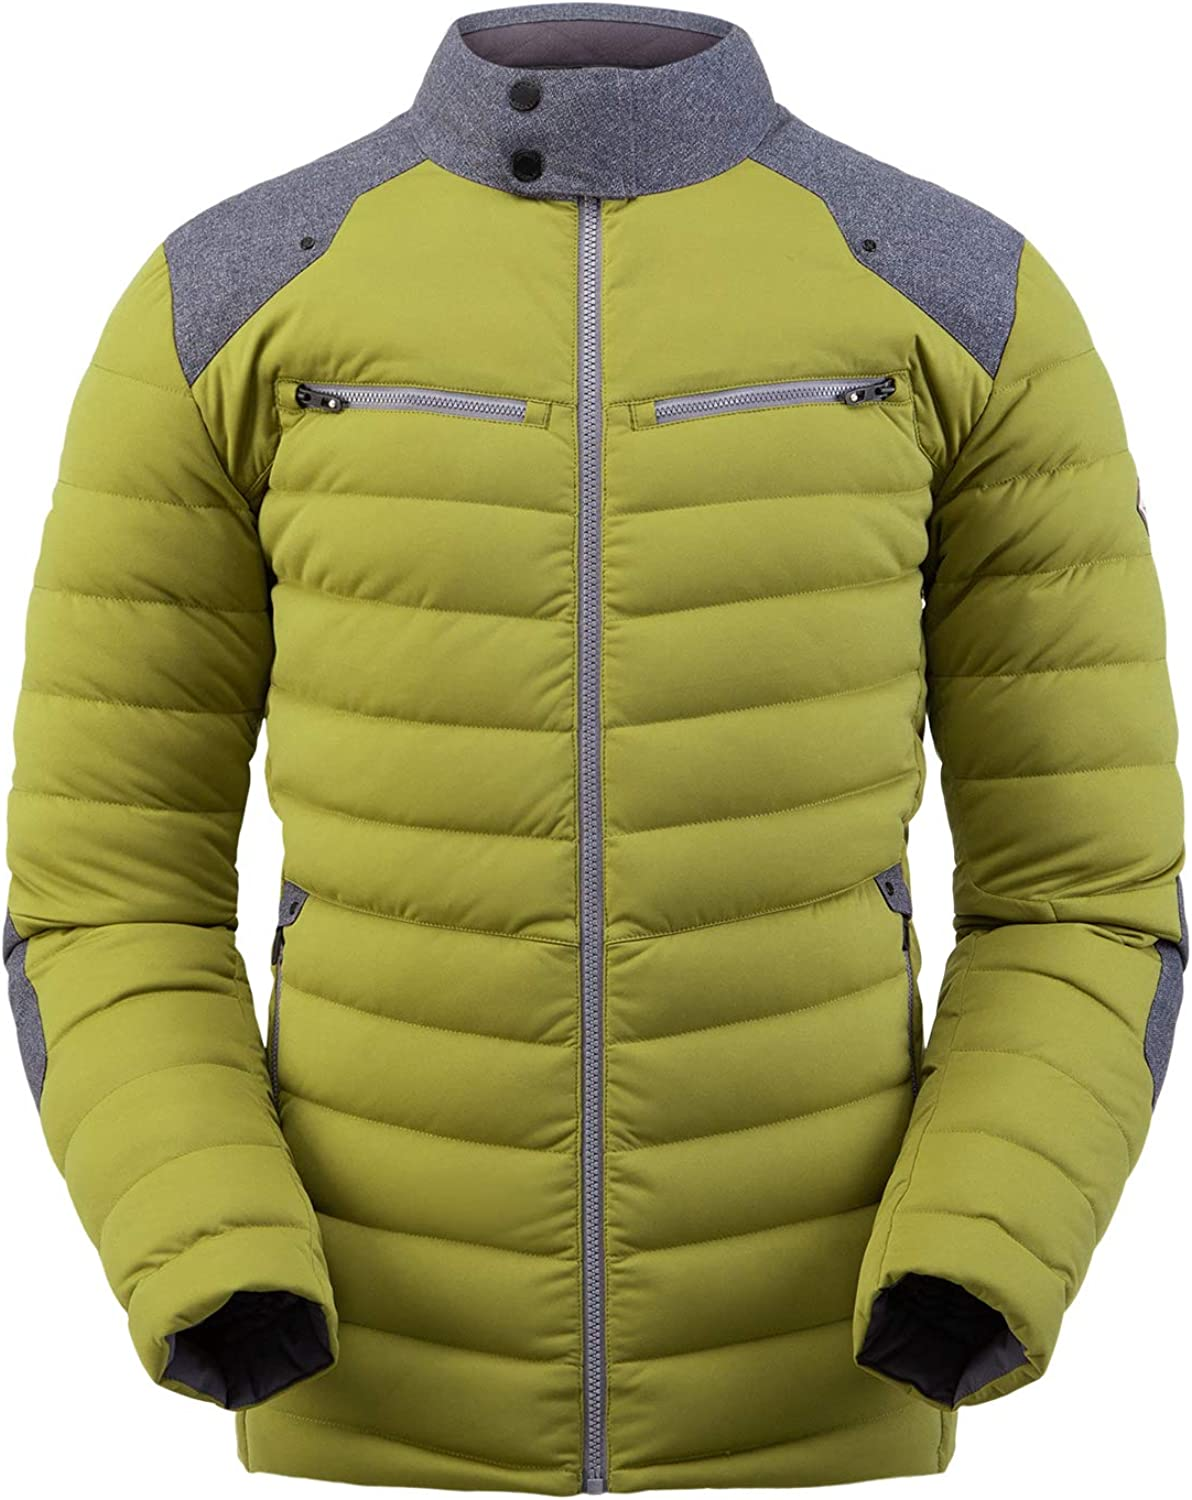 Spyder Men's Free shipping Alpine Now free shipping Stretch Down – Puff Jacket Paneled